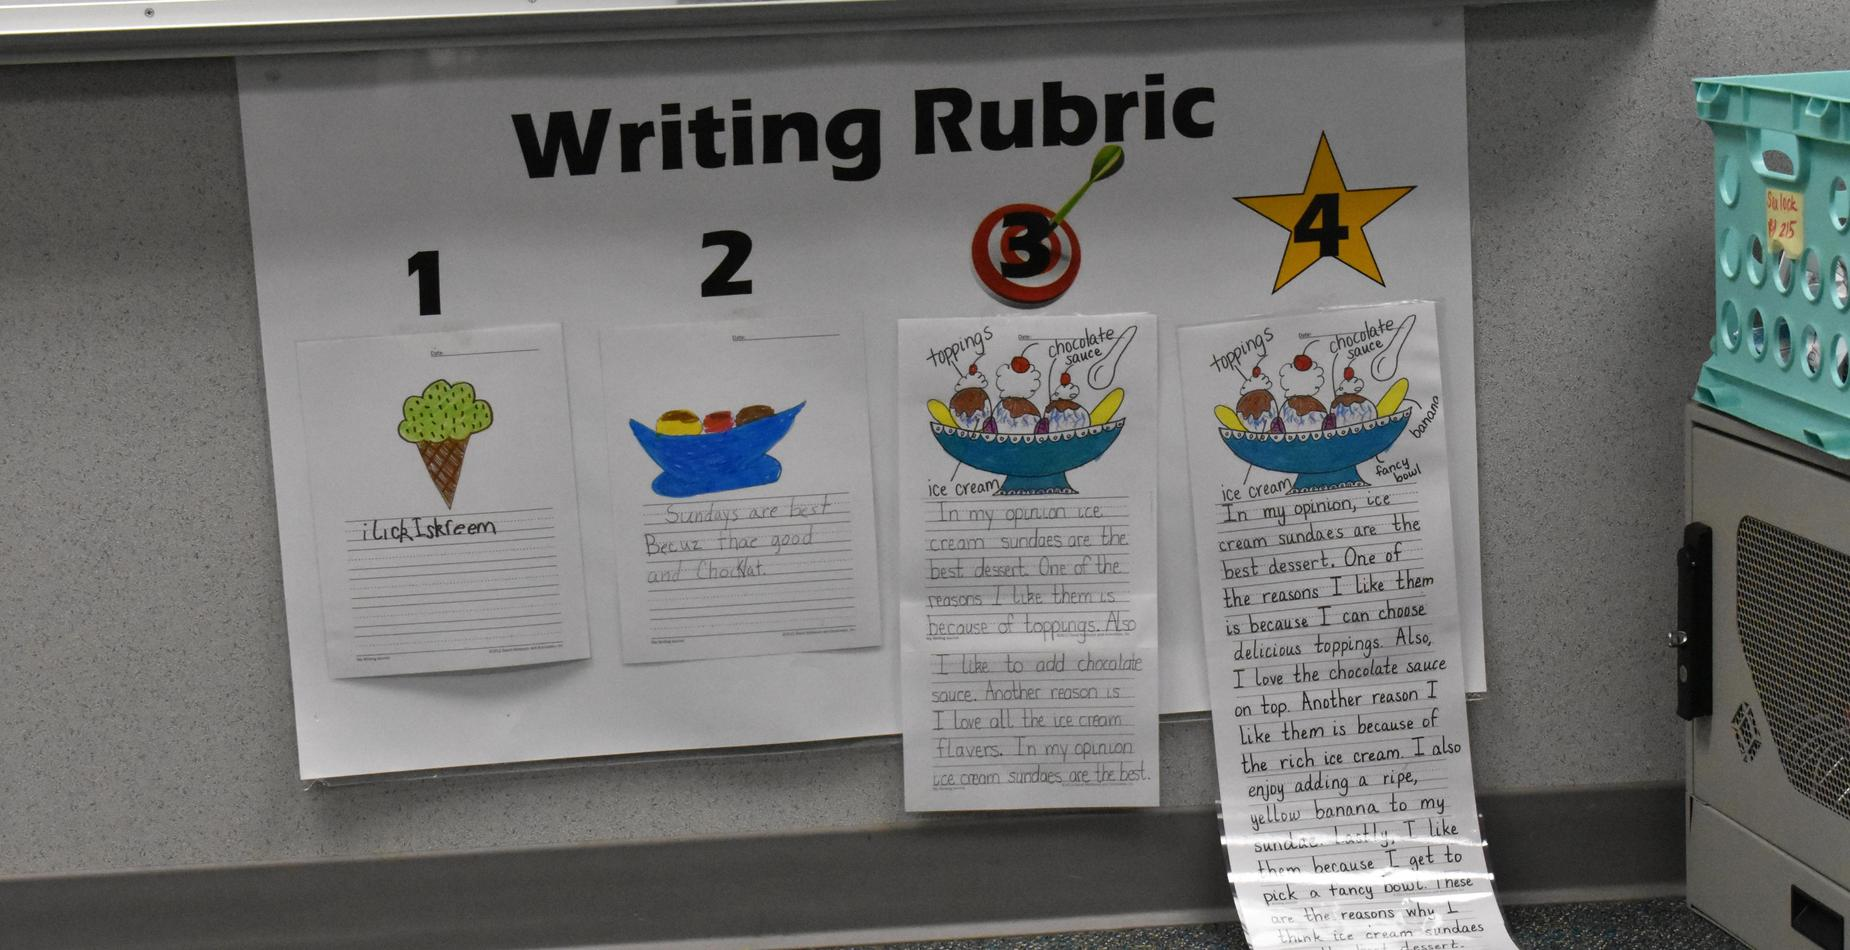 A writing rubric with examples for what a 1, 2, 3, and super 4 would look like.